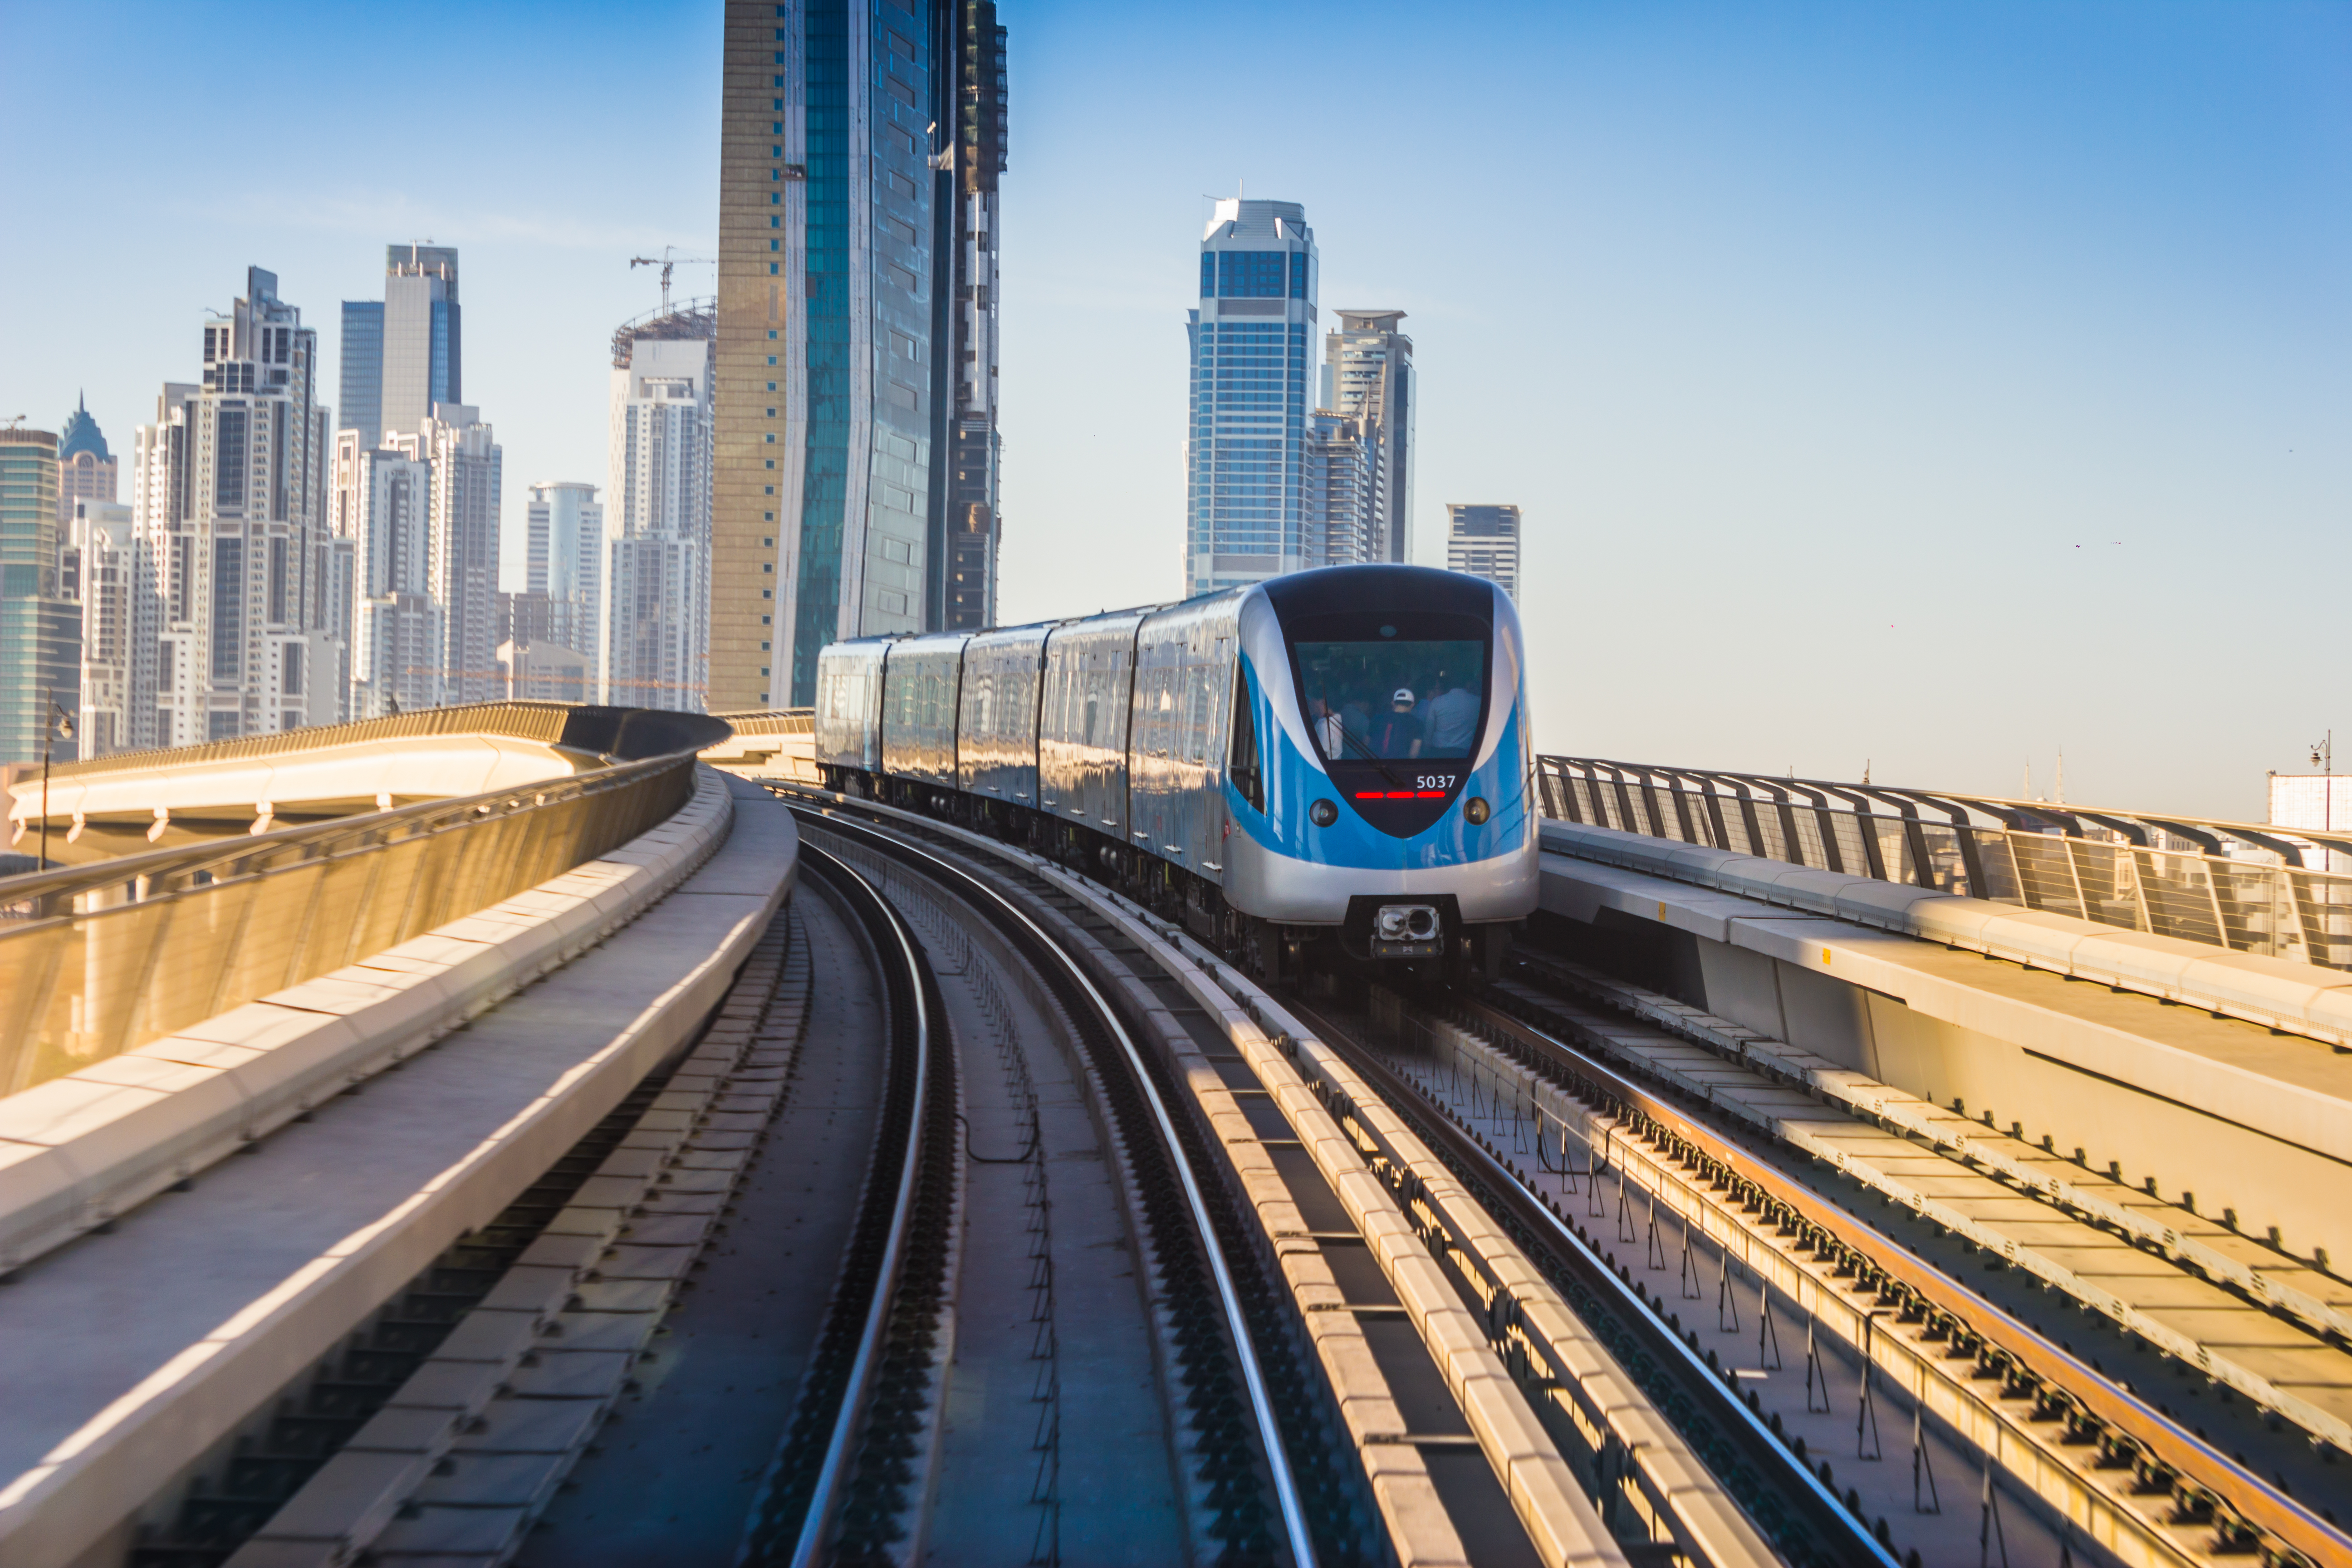 DUBAI UAE - NOVEMBER 18: Dubai Metro. A view of the city from the subway car nov 18. 2012. Dubai Metro as world's longest fully automated metro network (75 km) on November 18 2012 Dubai UAE.